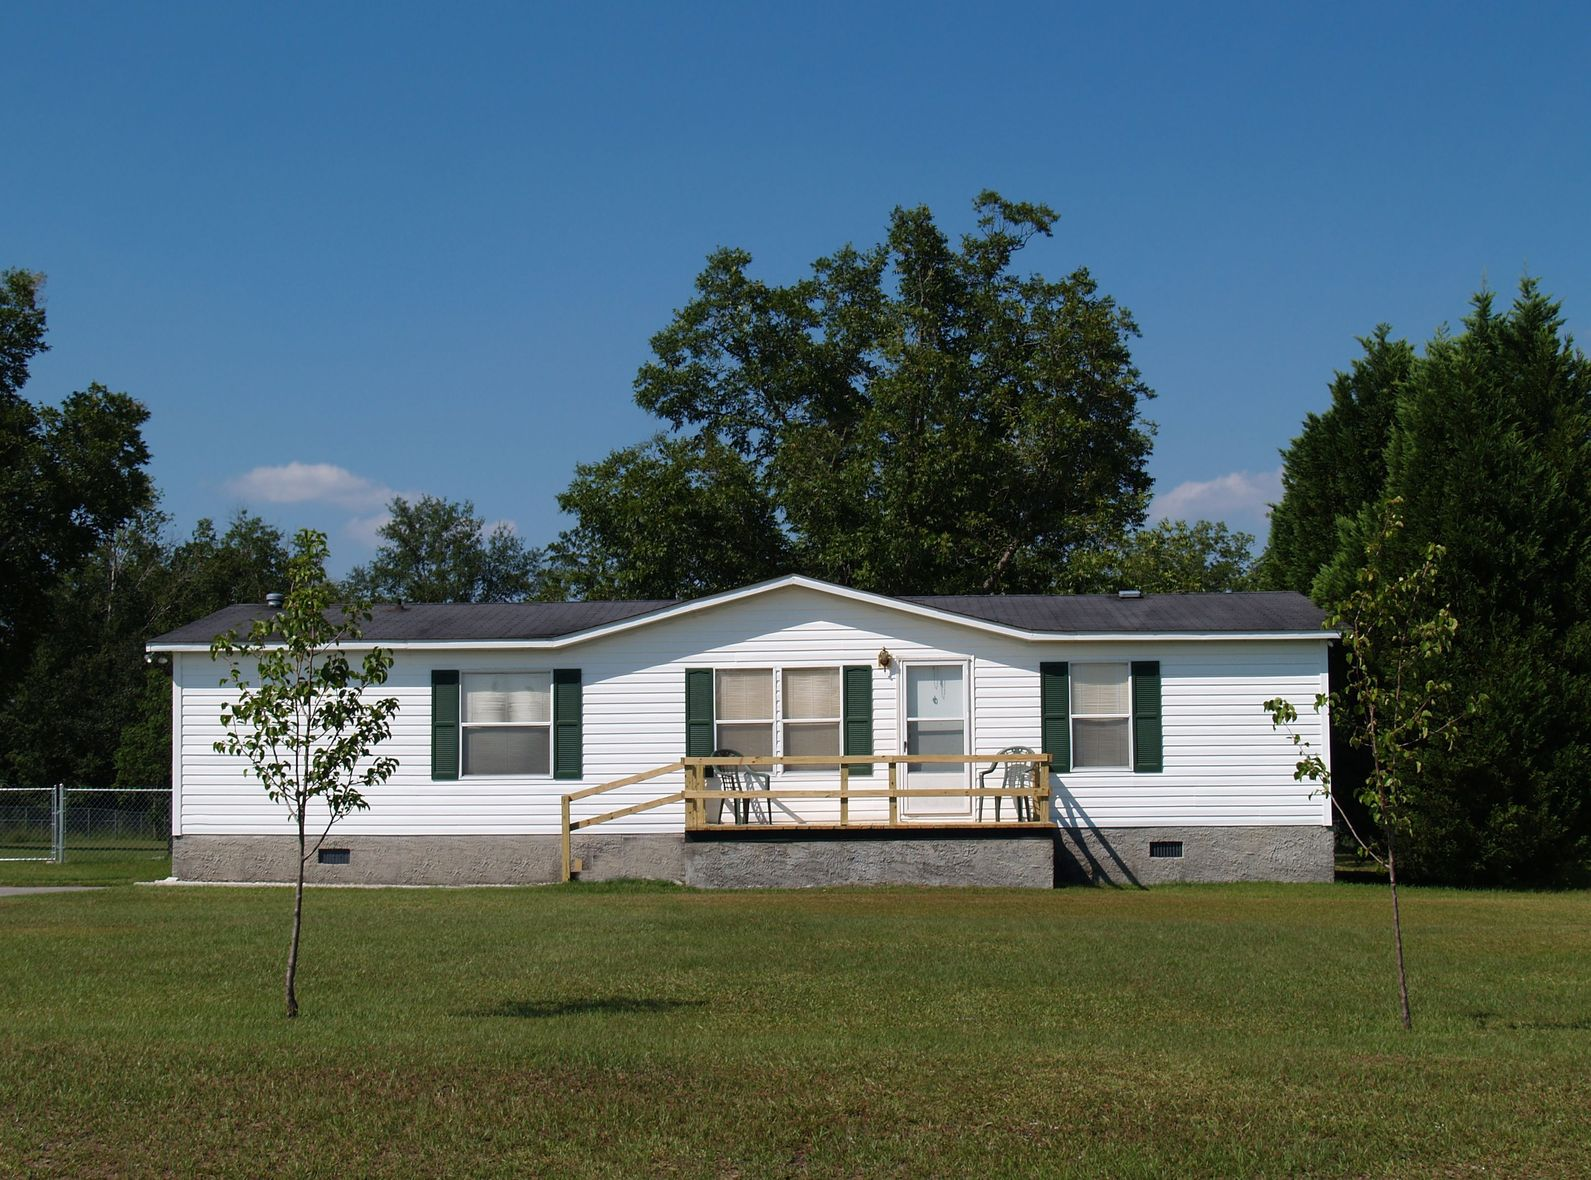 Panama City Mobile Home Insurance